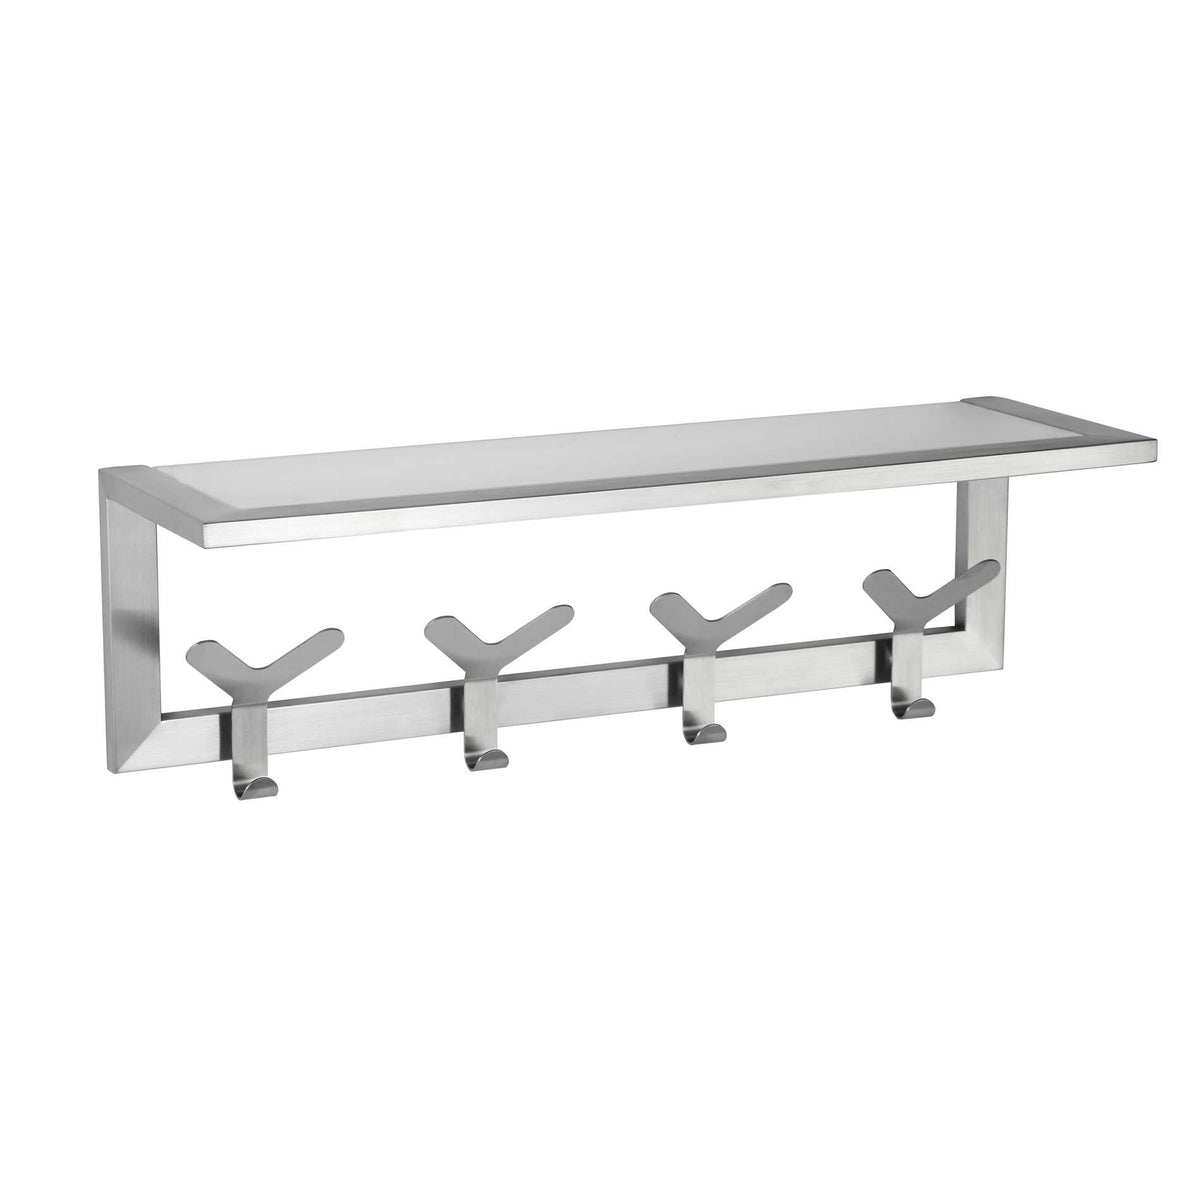 Milton Contemporary Stainless Steel Coat and Hat Hook Rail/Rack with Glass Shelf, Brushed Nickel